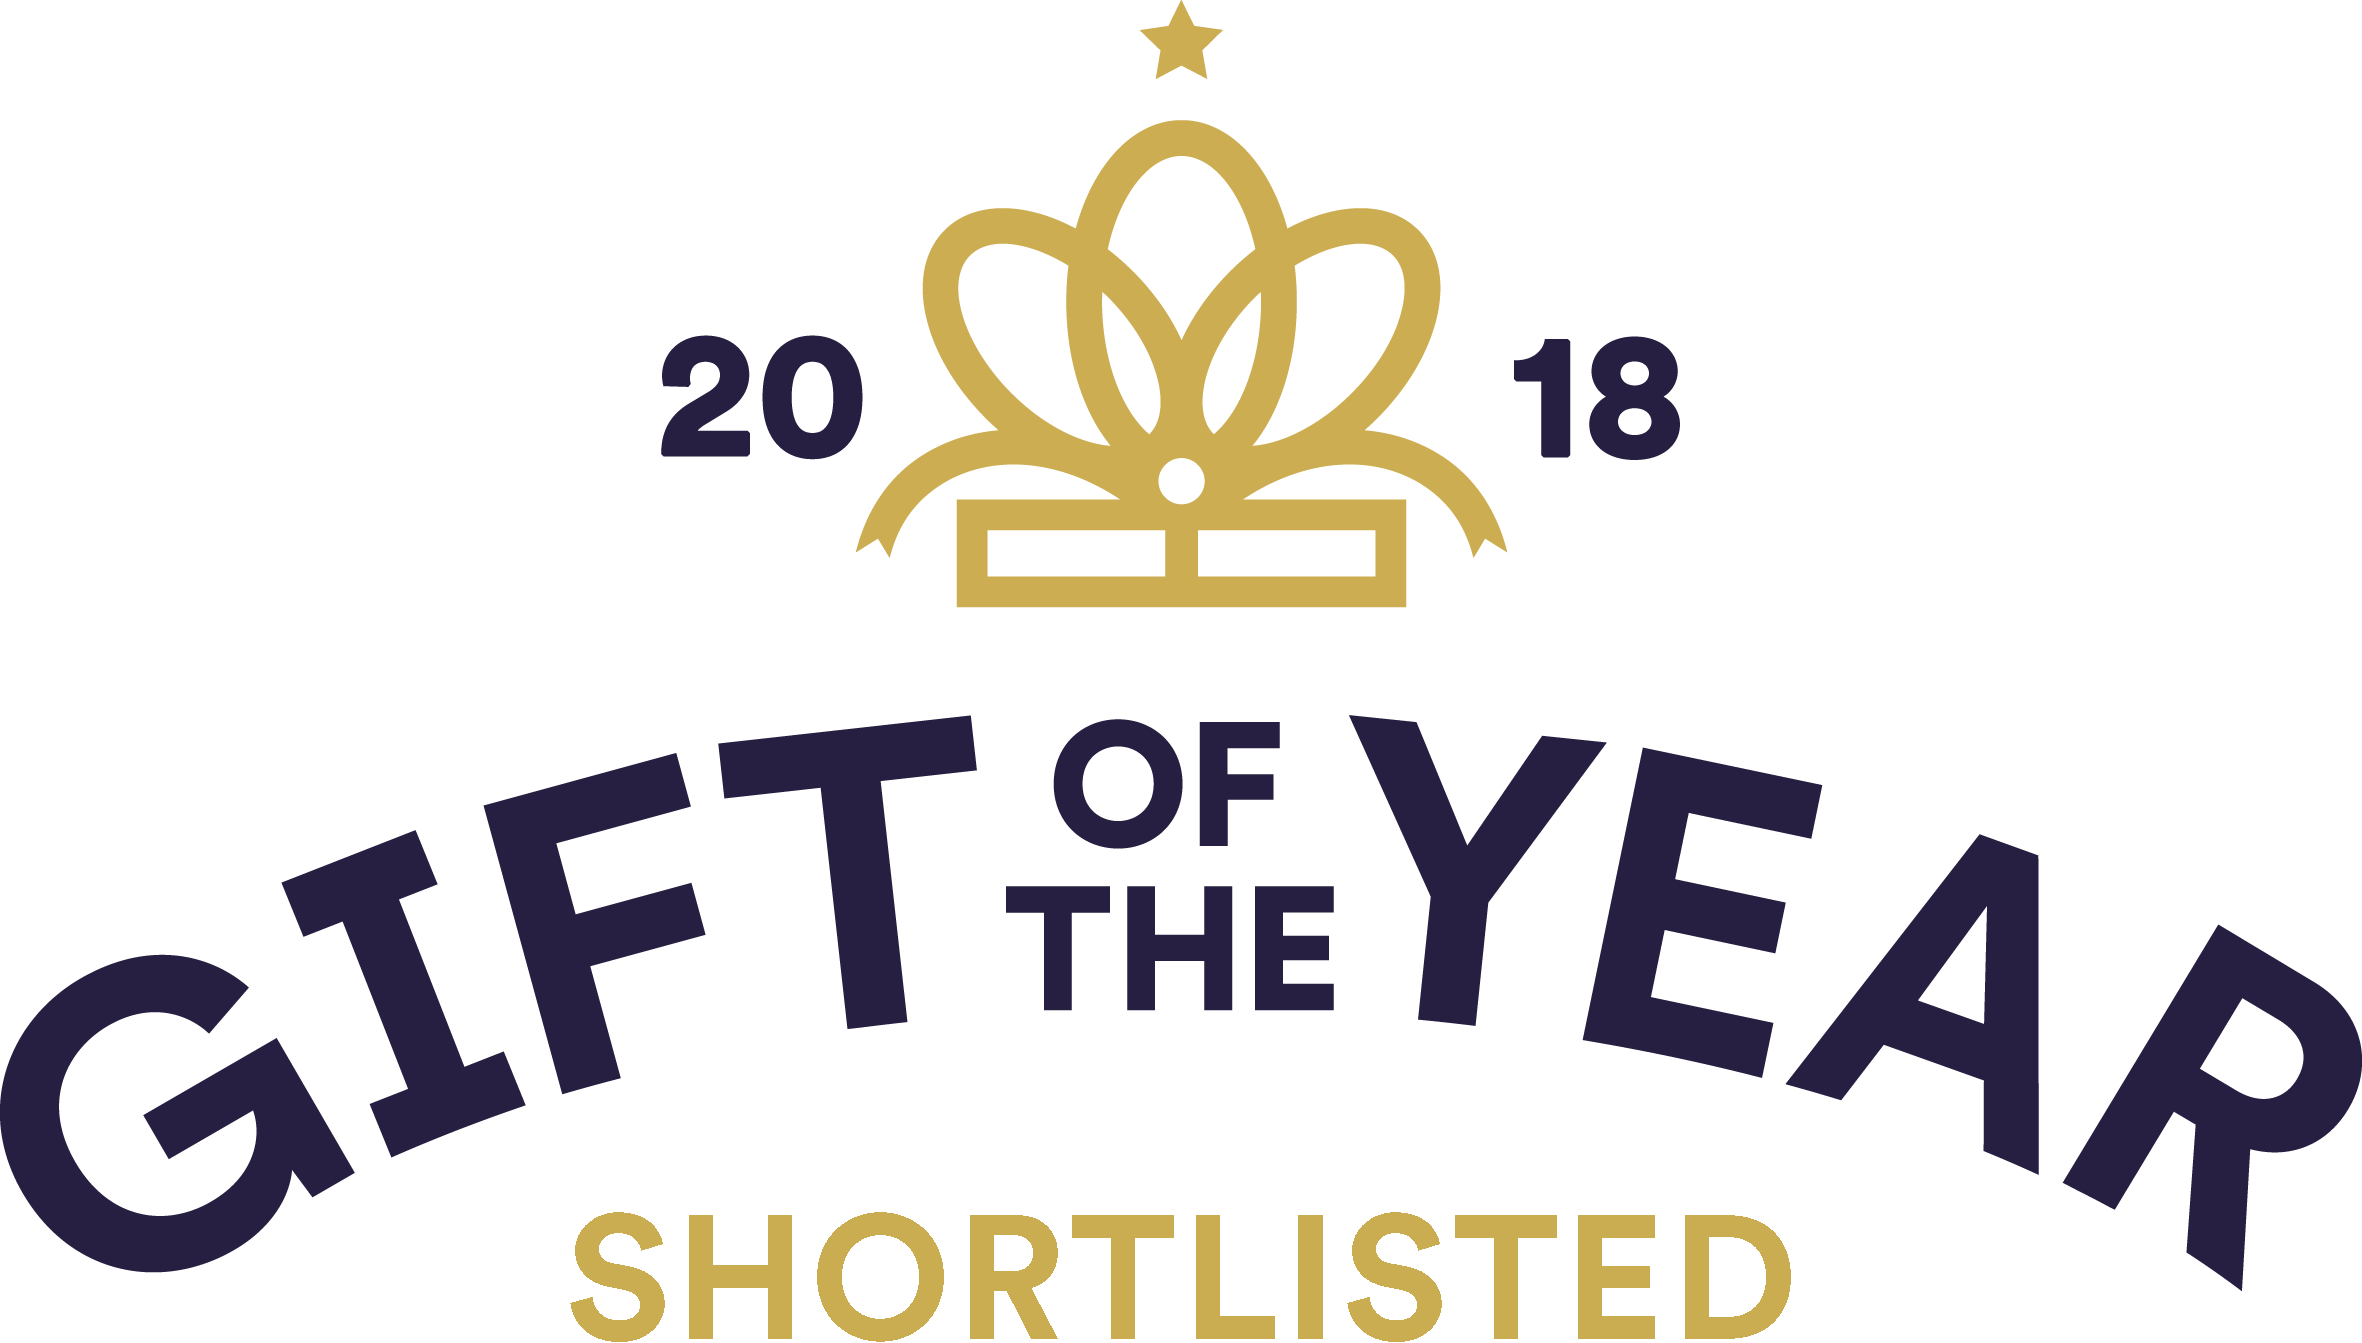 Gift of the Year 2018 Shortlisted Logo